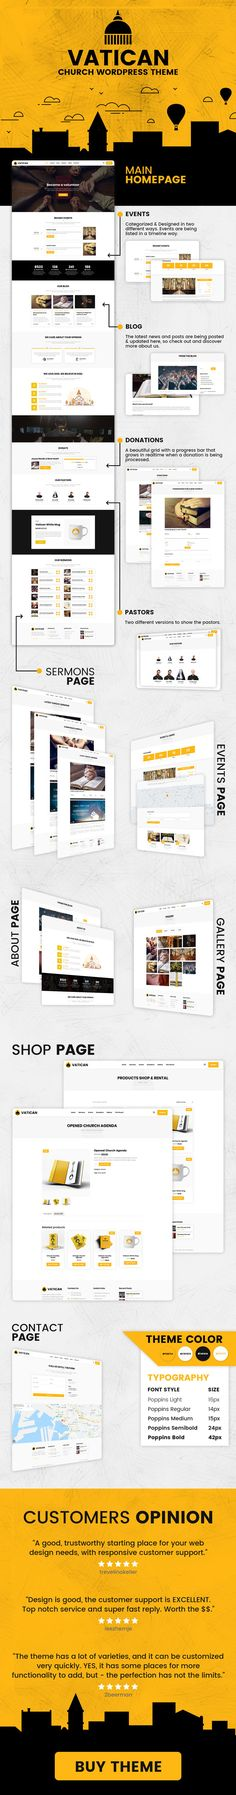 Buy Vatican - Church WordPress Theme by modeltheme on ThemeForest. Vatican is the latest WordPress Theme for Churches, Mosques or simply for Donations or Fundraising websites. Fundraising Sites, Charitable Donations, Web Themes, Blog Sites, Premium Wordpress Themes, Vatican, Things To Come, Typography, Social Media